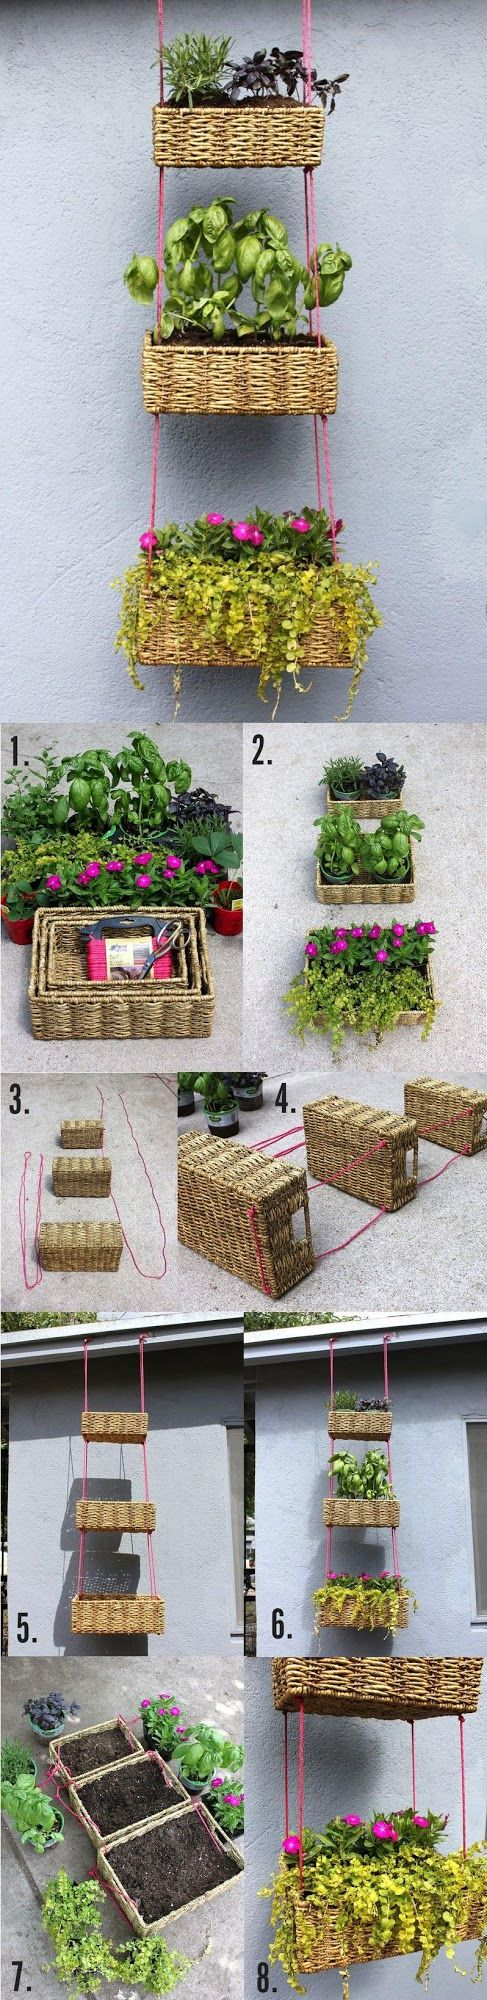 50 Best Images About Kitchen Herb Planter On Pinterest